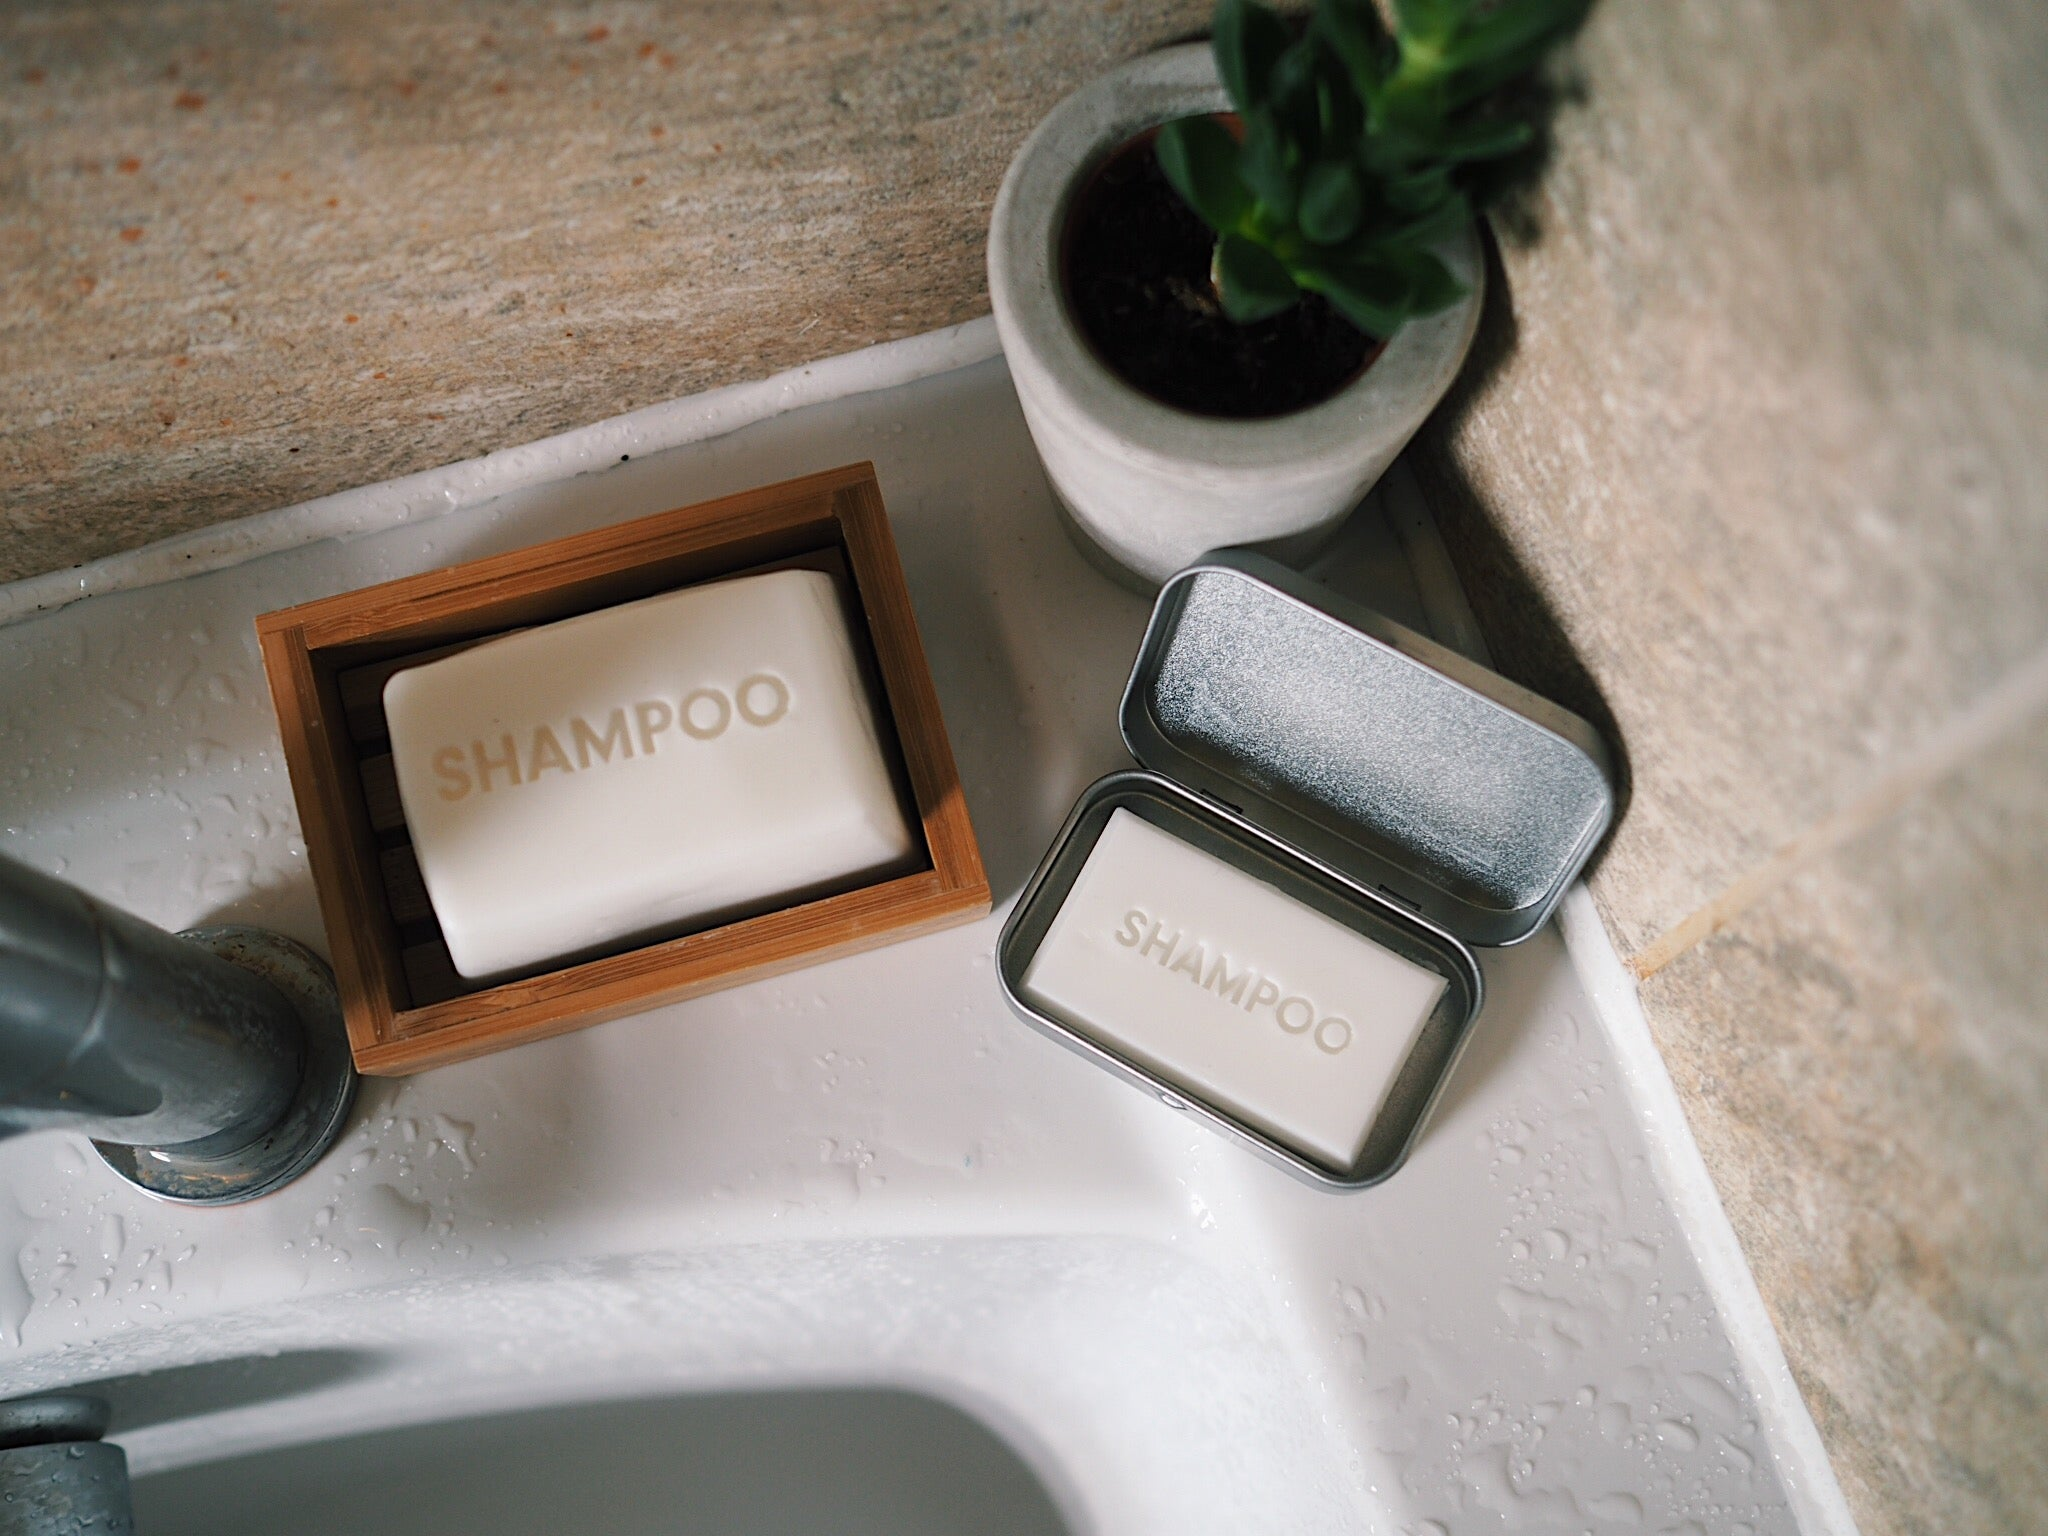 Geranium, Neroli, Ylang Ylang Travel Shampoo Bar - The Weekly Shop | Plastic Free Online Shop